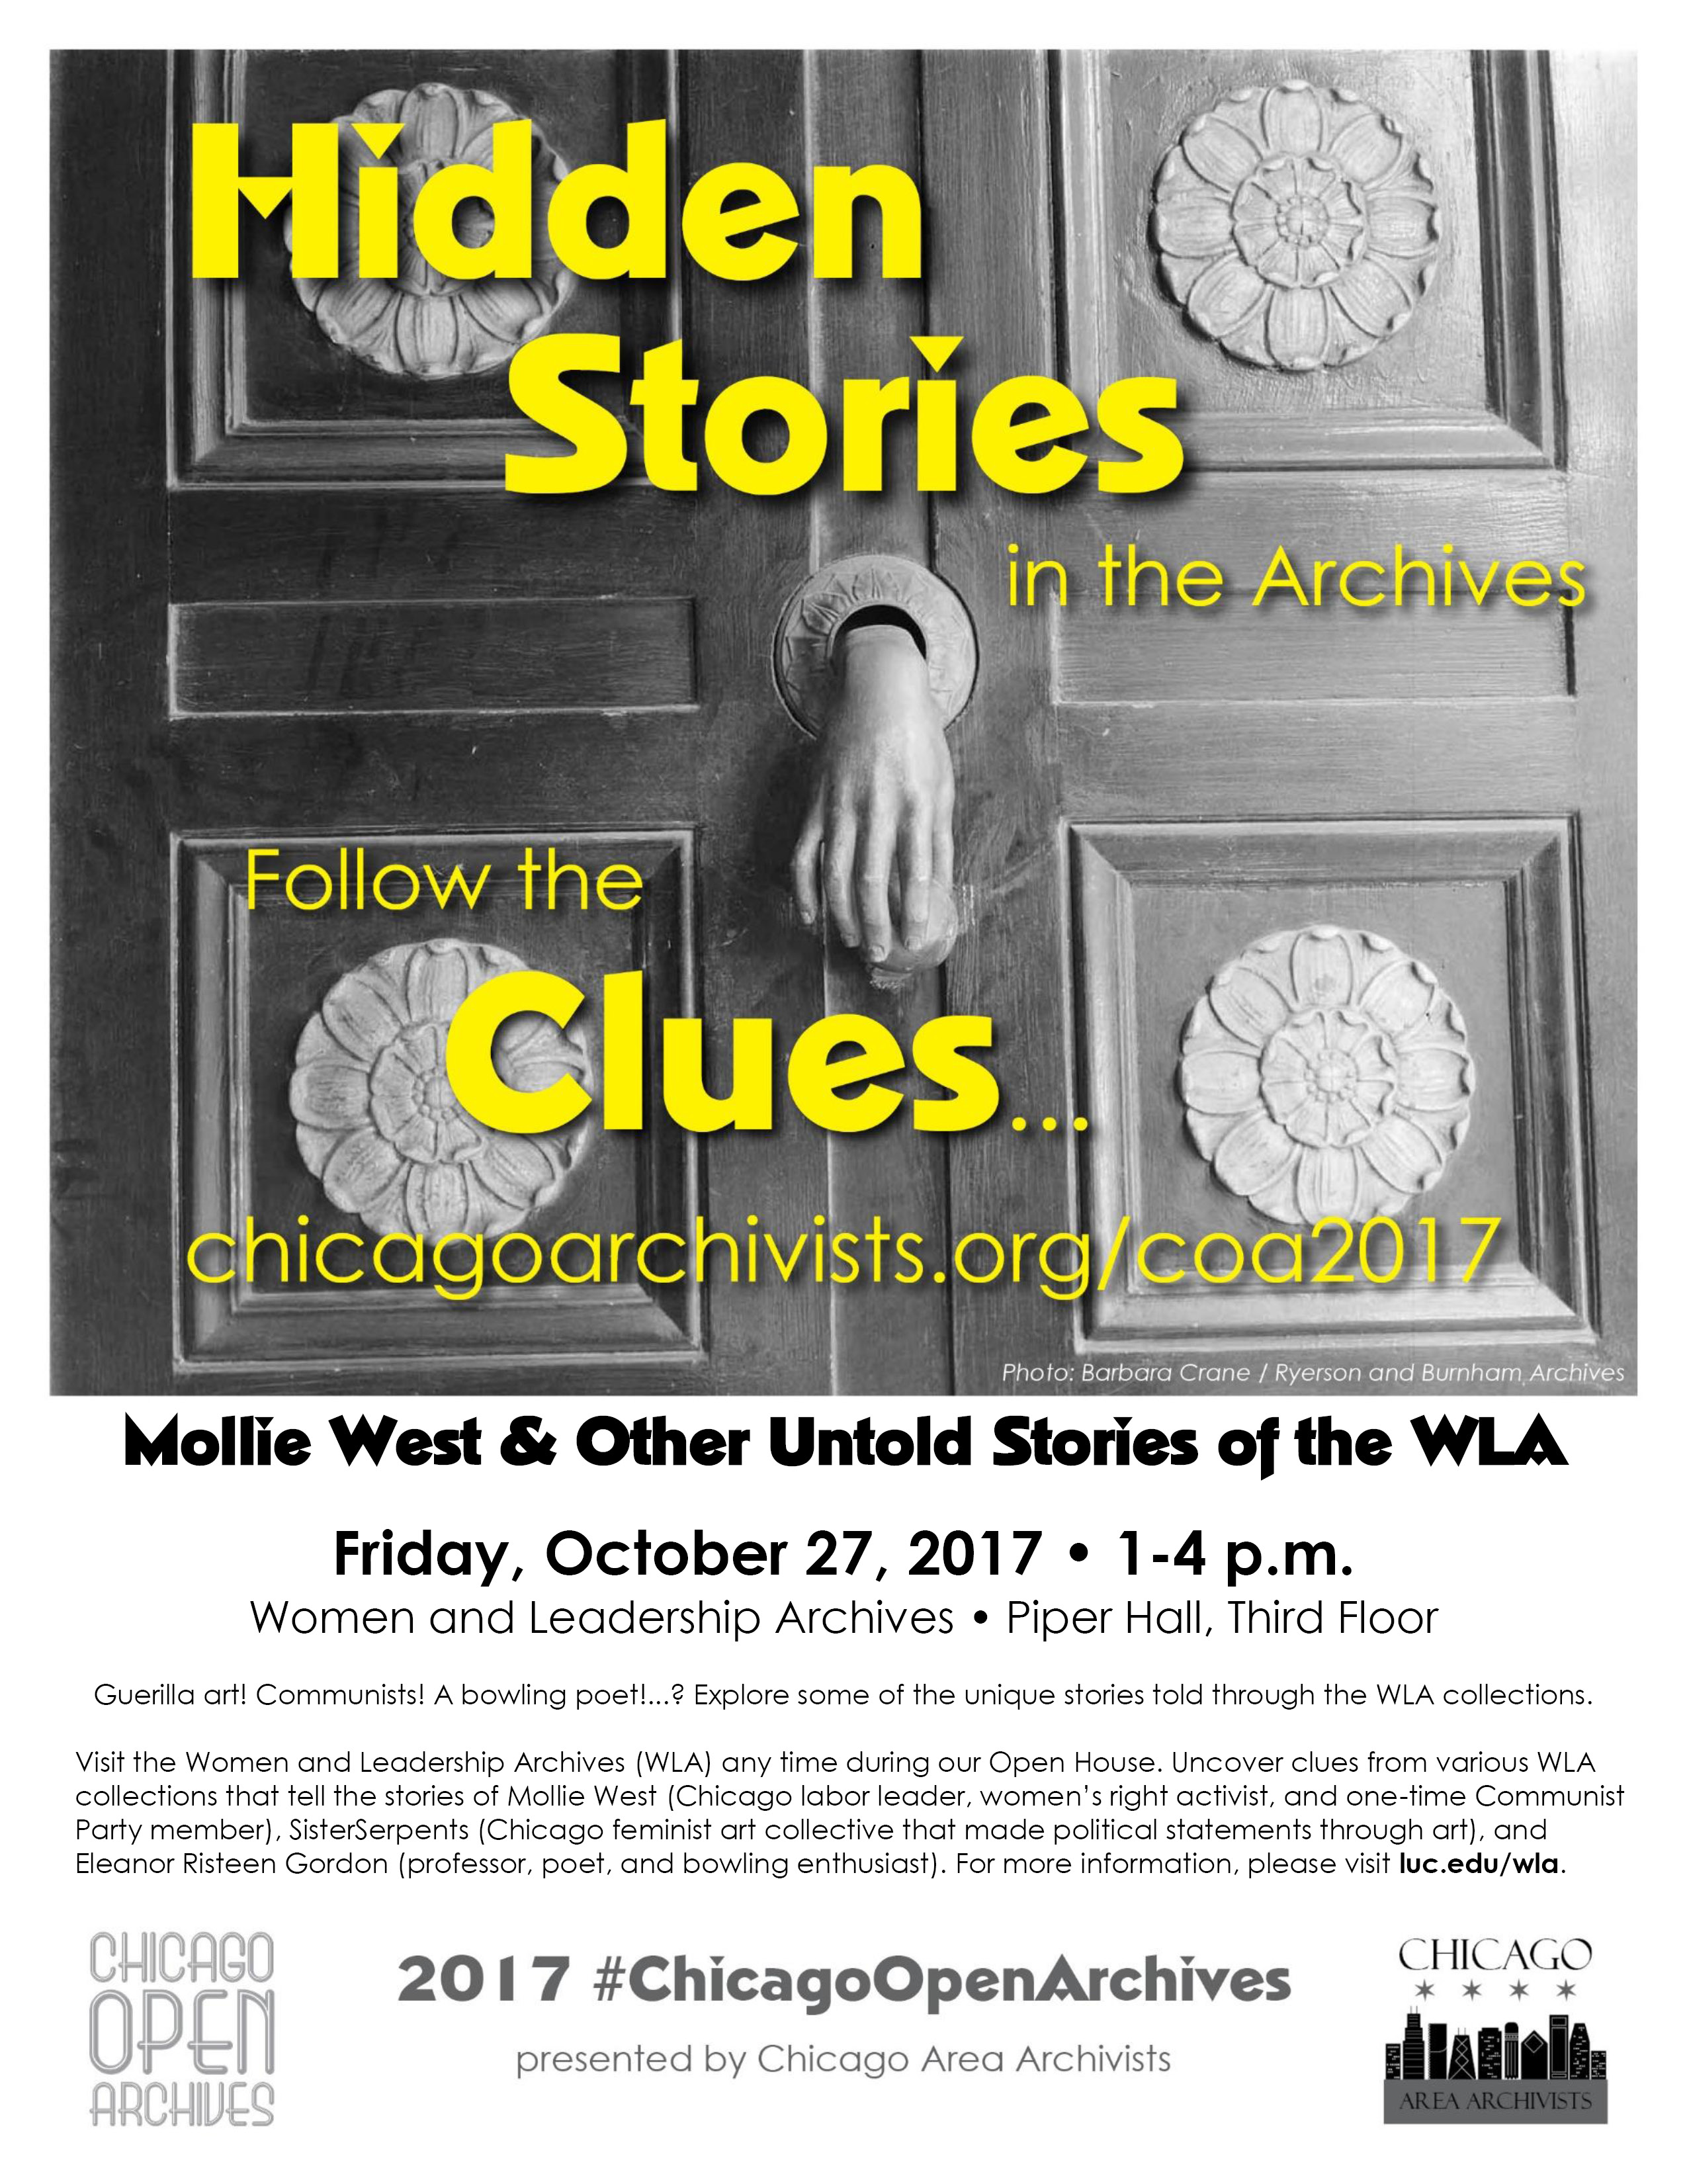 WLA Open House: Mollie West and Other Untold Stories of the Women and Leadership Archives